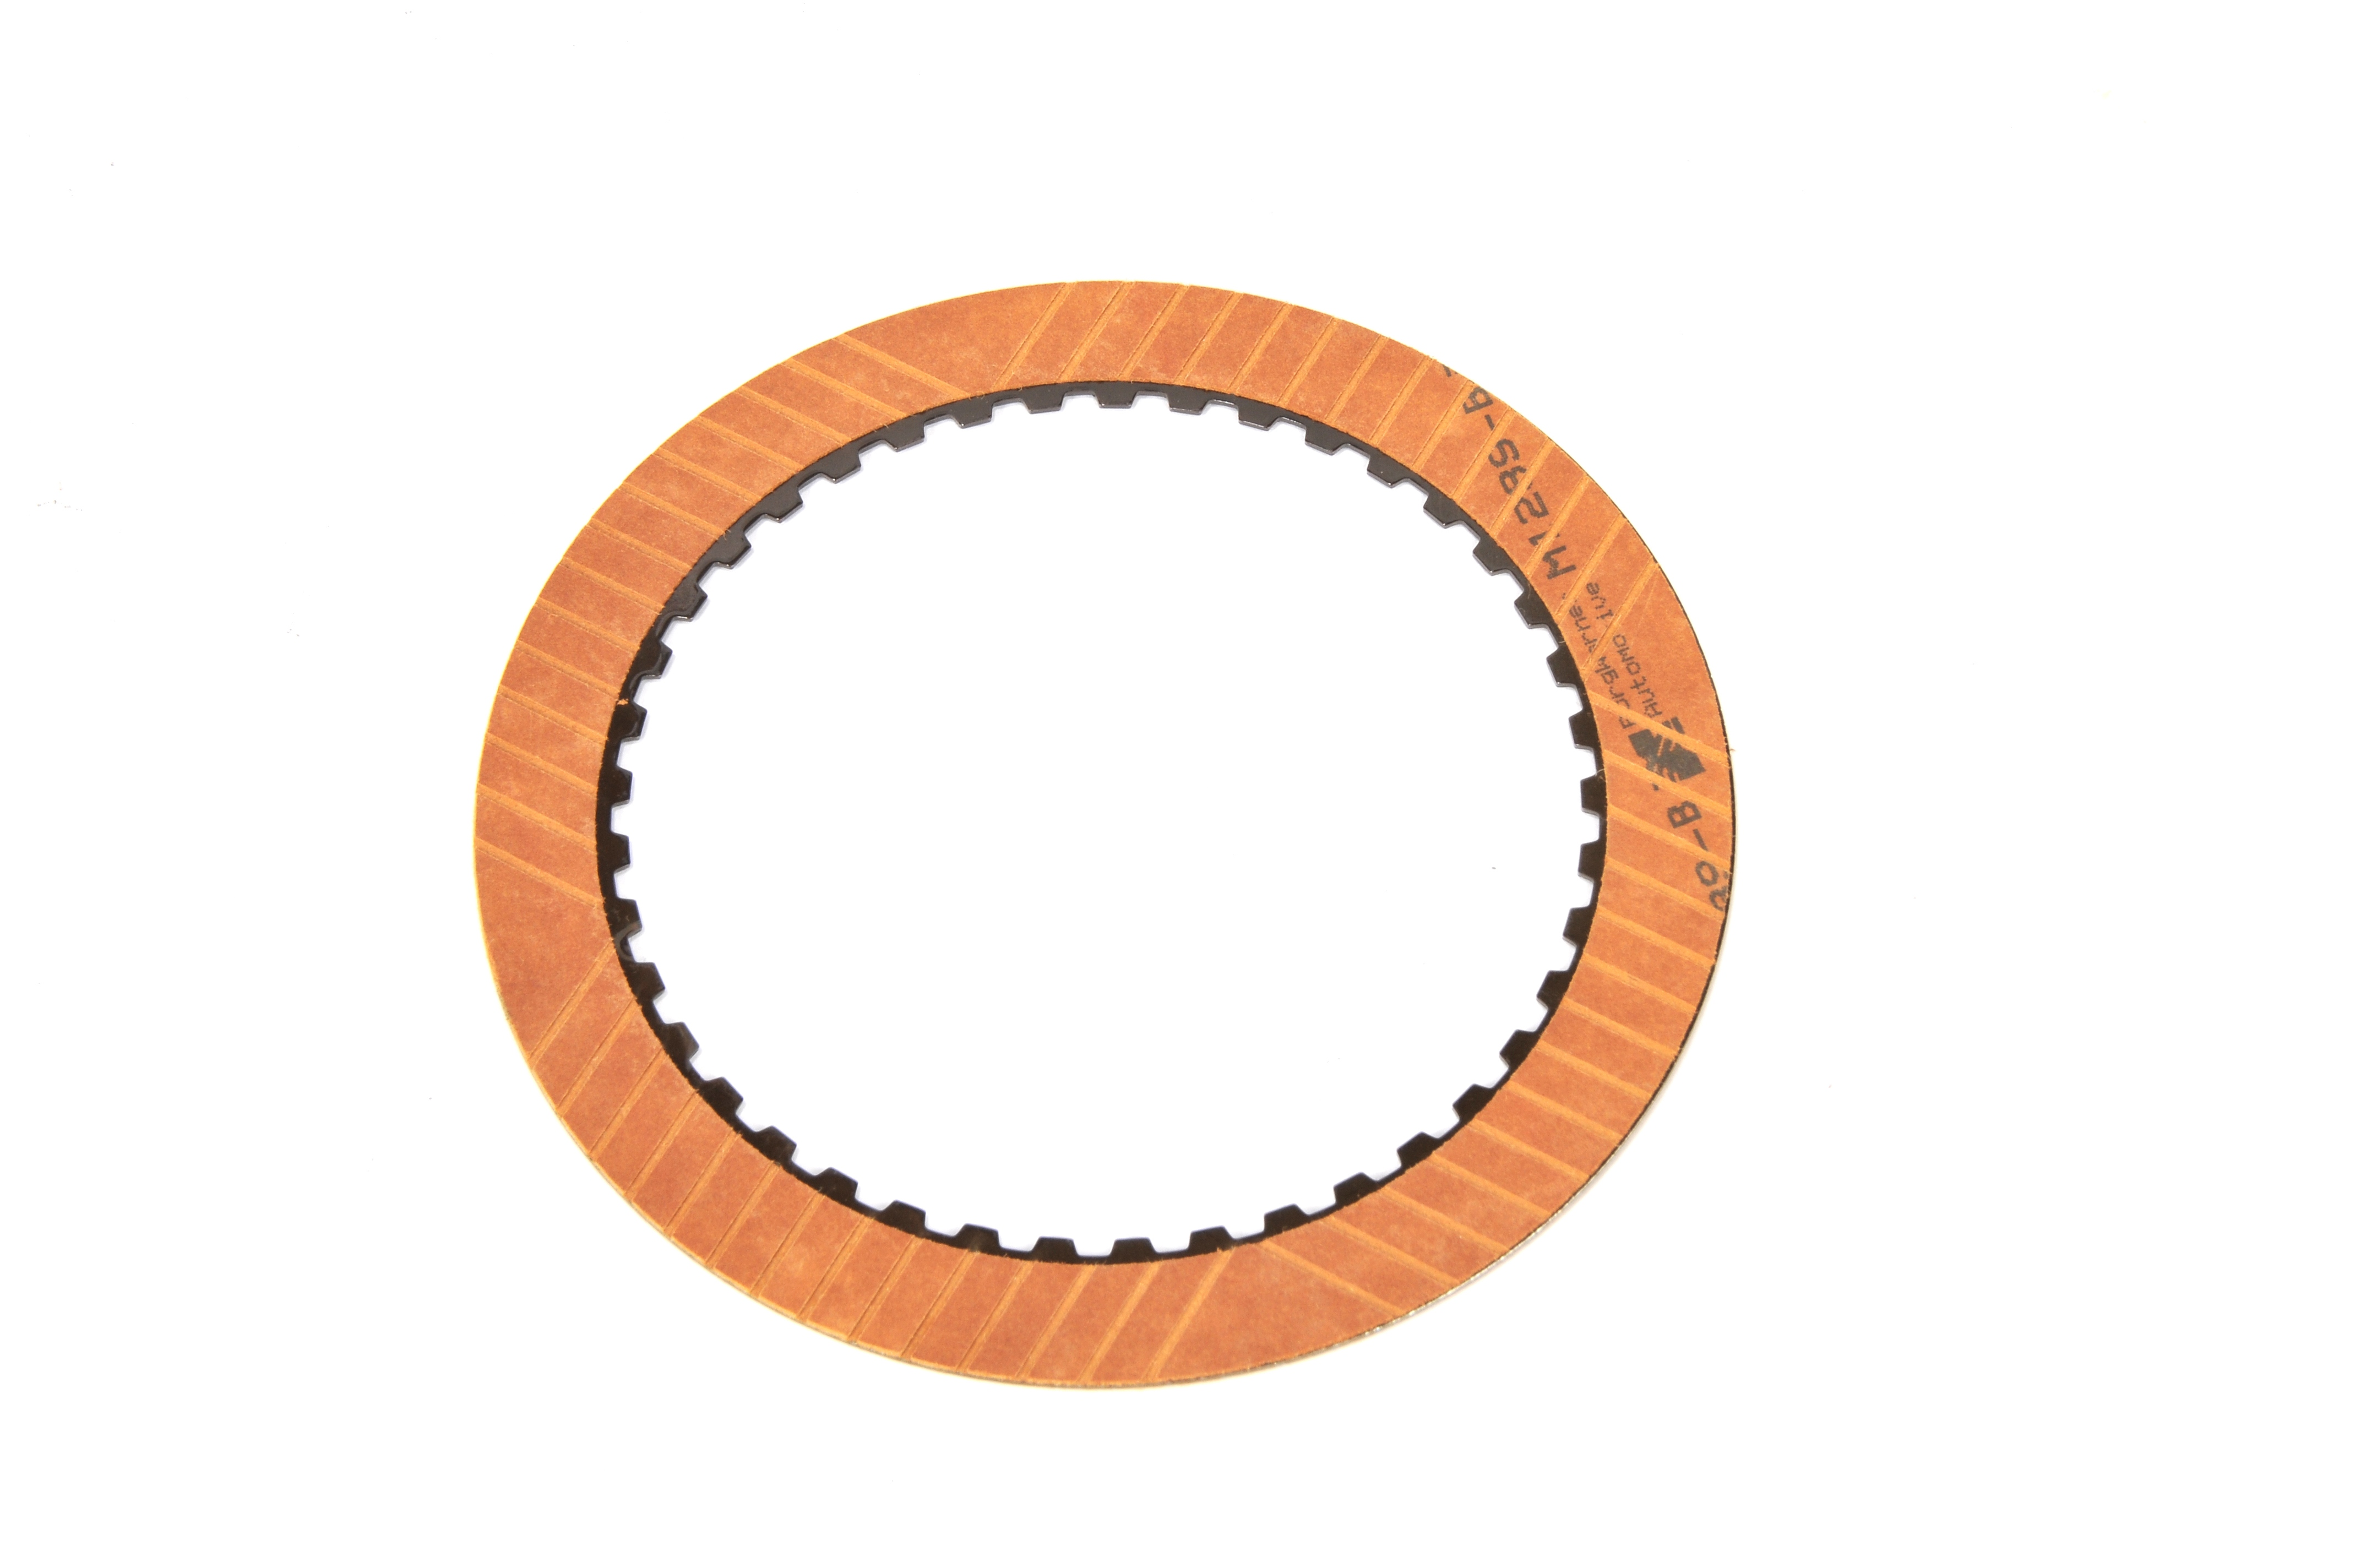 ACDELCO GM ORIGINAL EQUIPMENT - Transmission Clutch Friction Plate - DCB 24281022